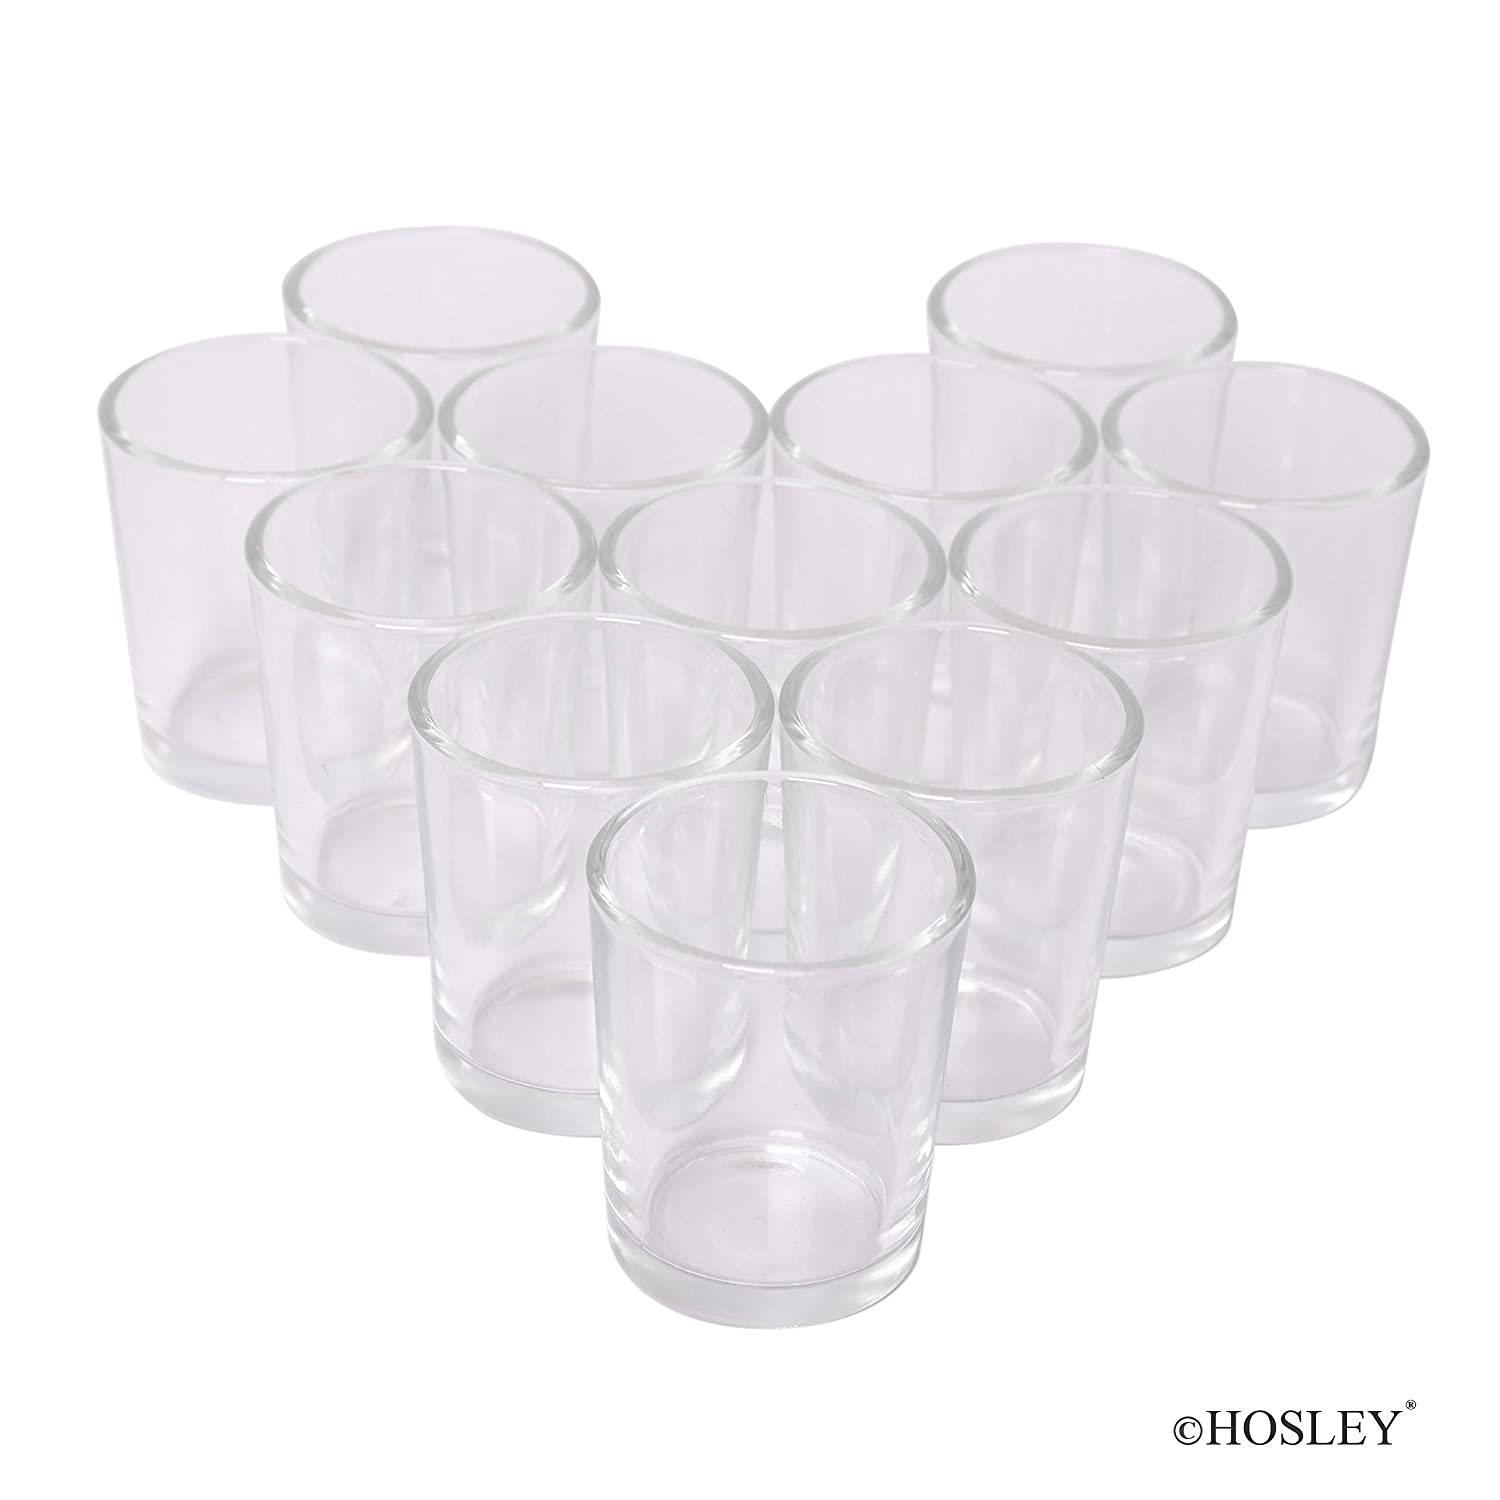 Hosley Set of 12 Votive//Tealight Holders 2-Clear Parties Ideal for Weddings Your Choice of Colors and Special Events